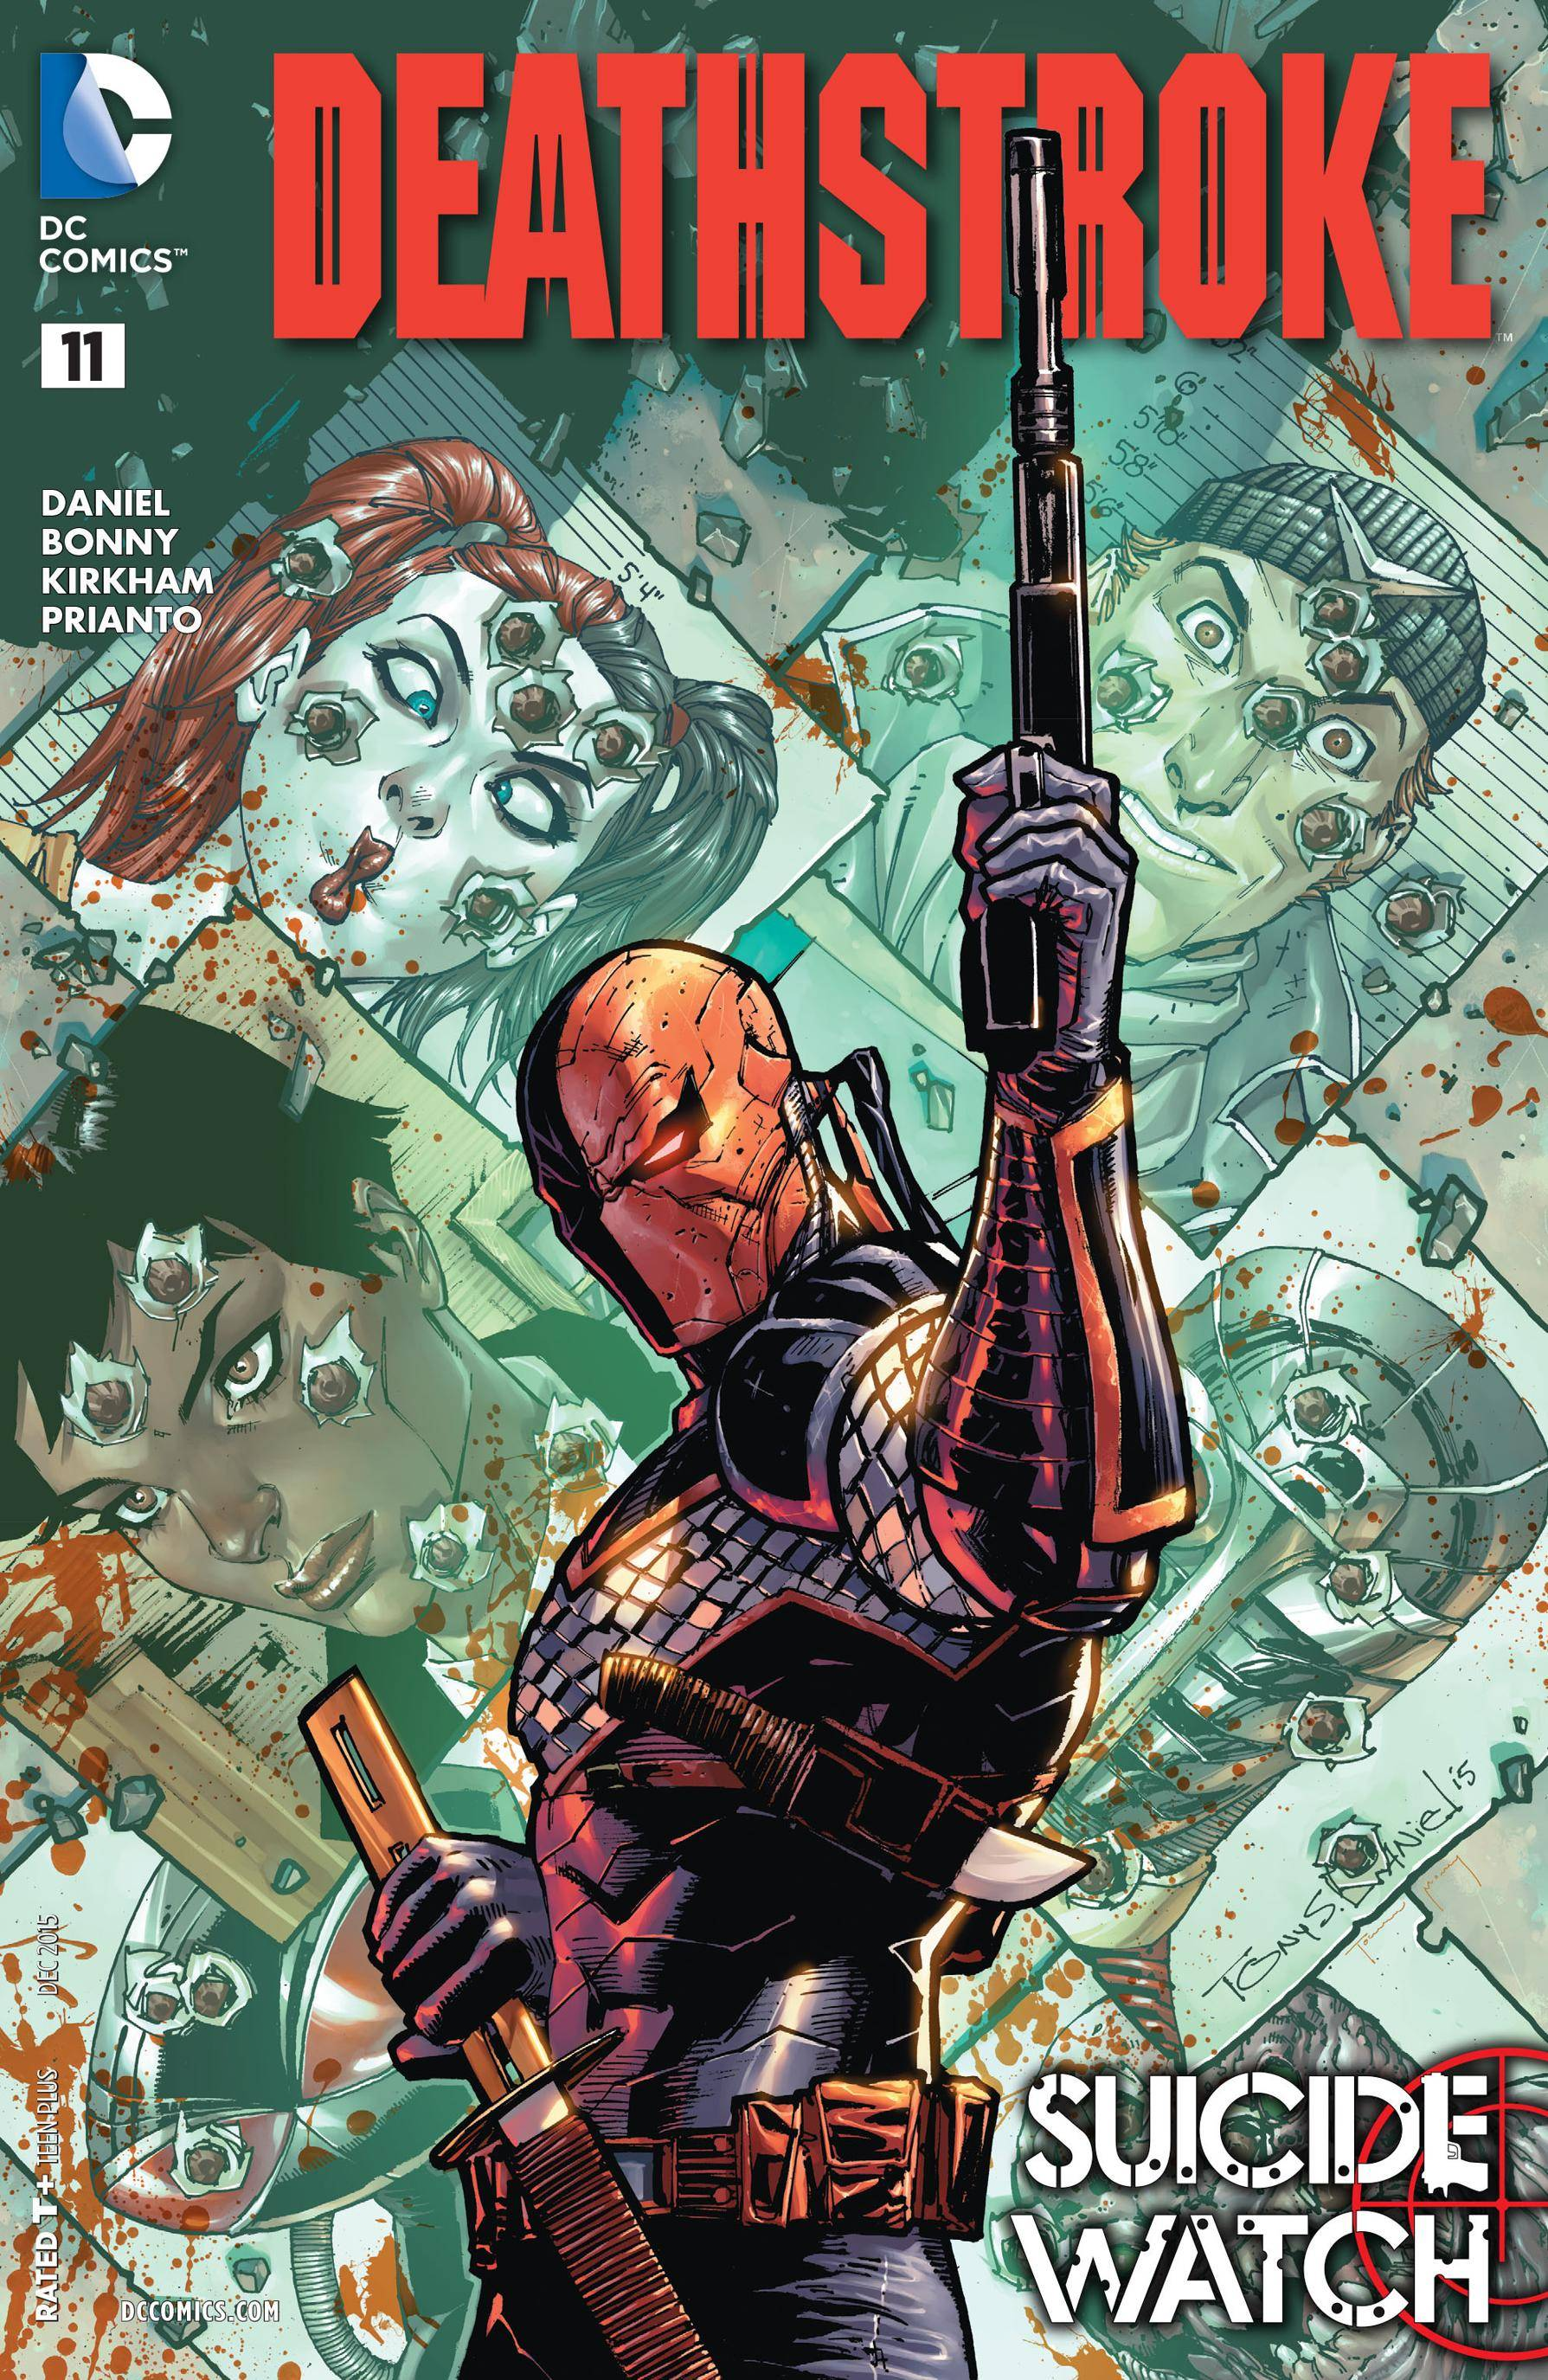 Deathstroke 011 2015 2 covers digital